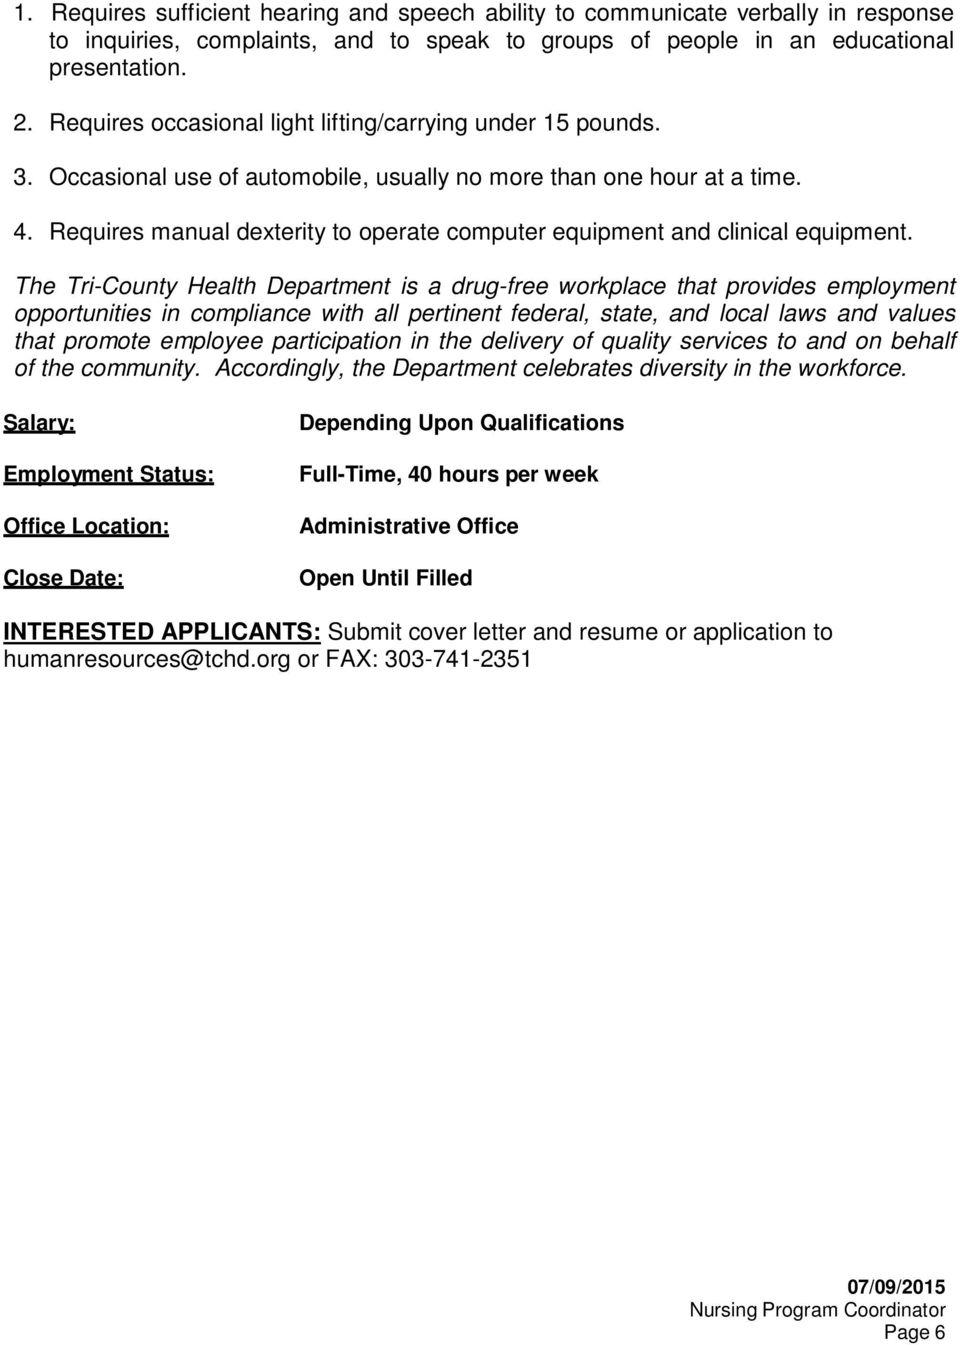 Requires manual dexterity to operate computer equipment and clinical equipment.